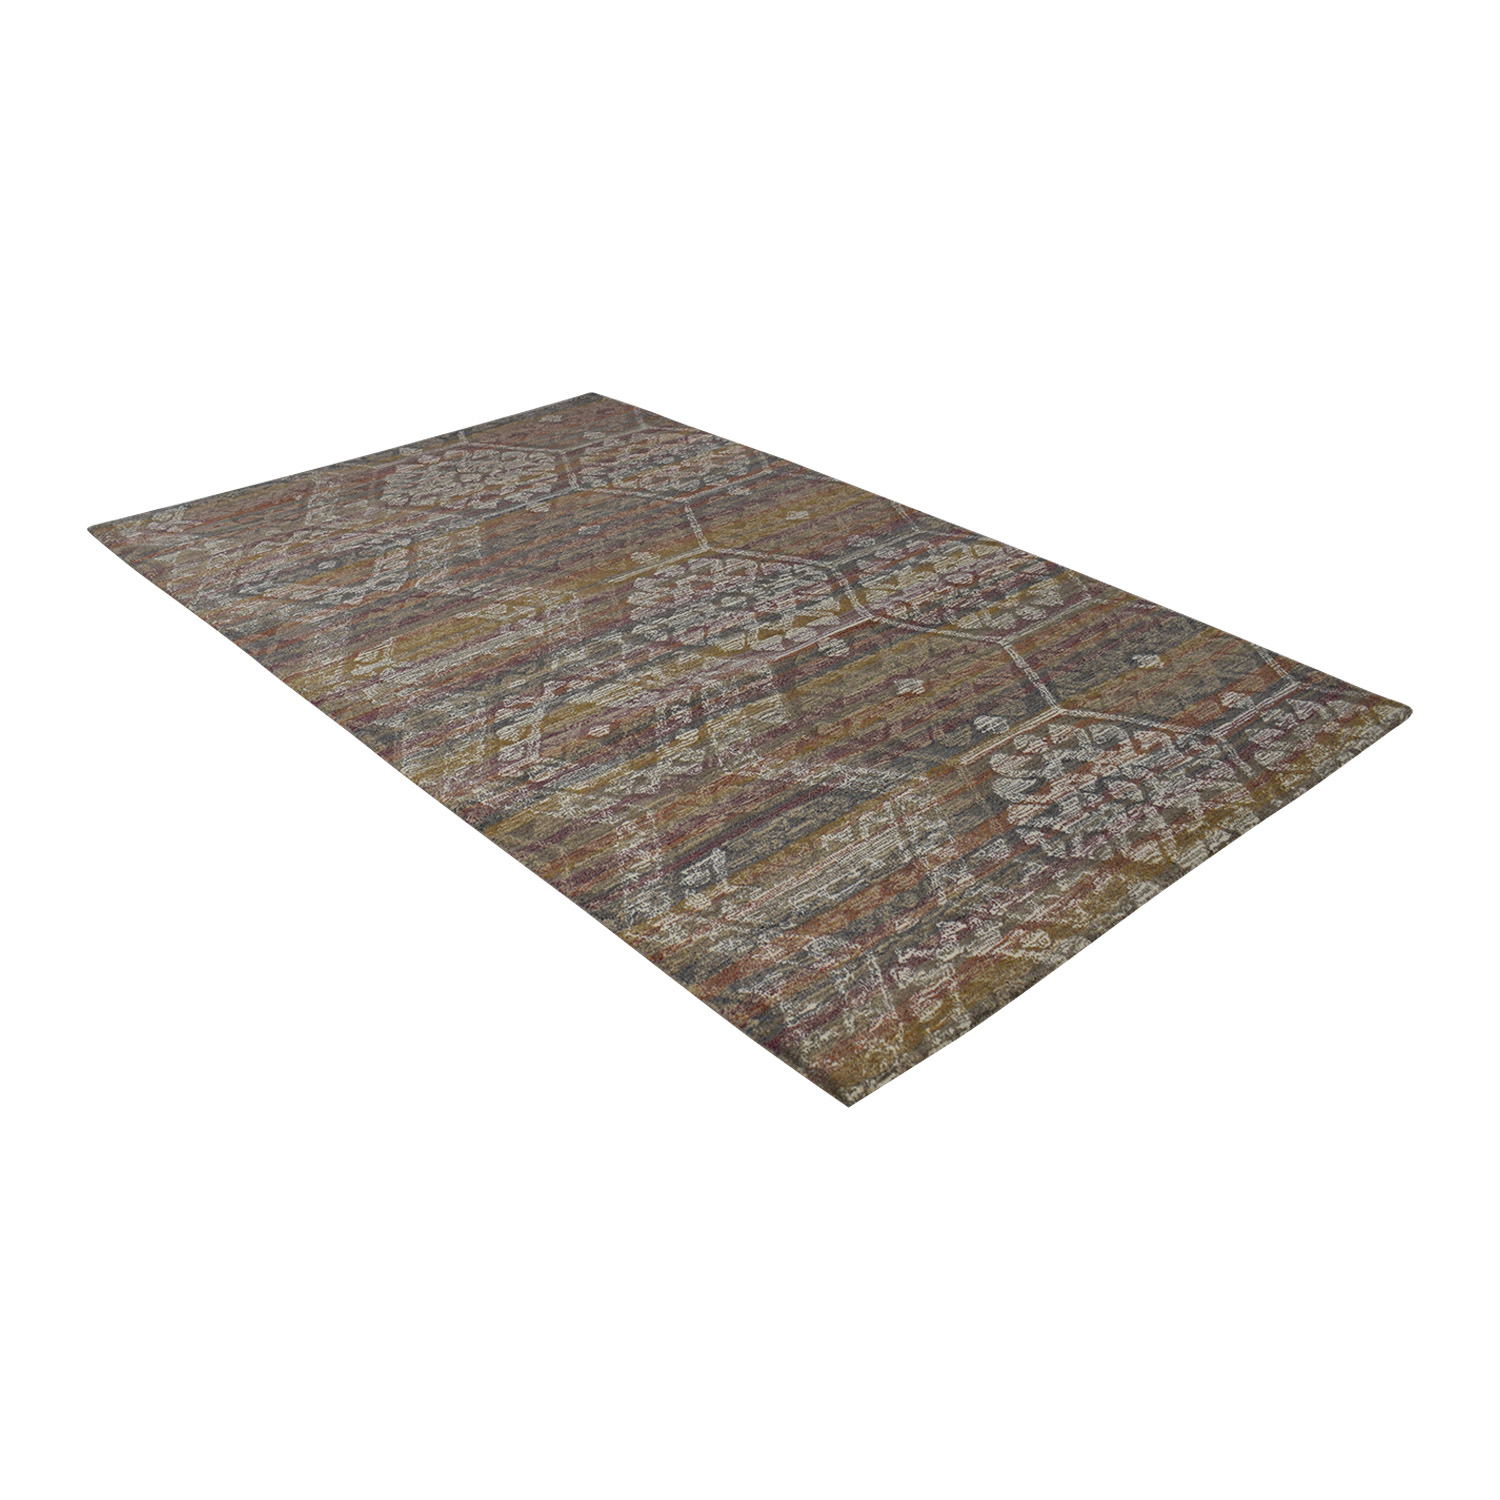 Obeetee Multi-Colored Handtufted Rug / Decor